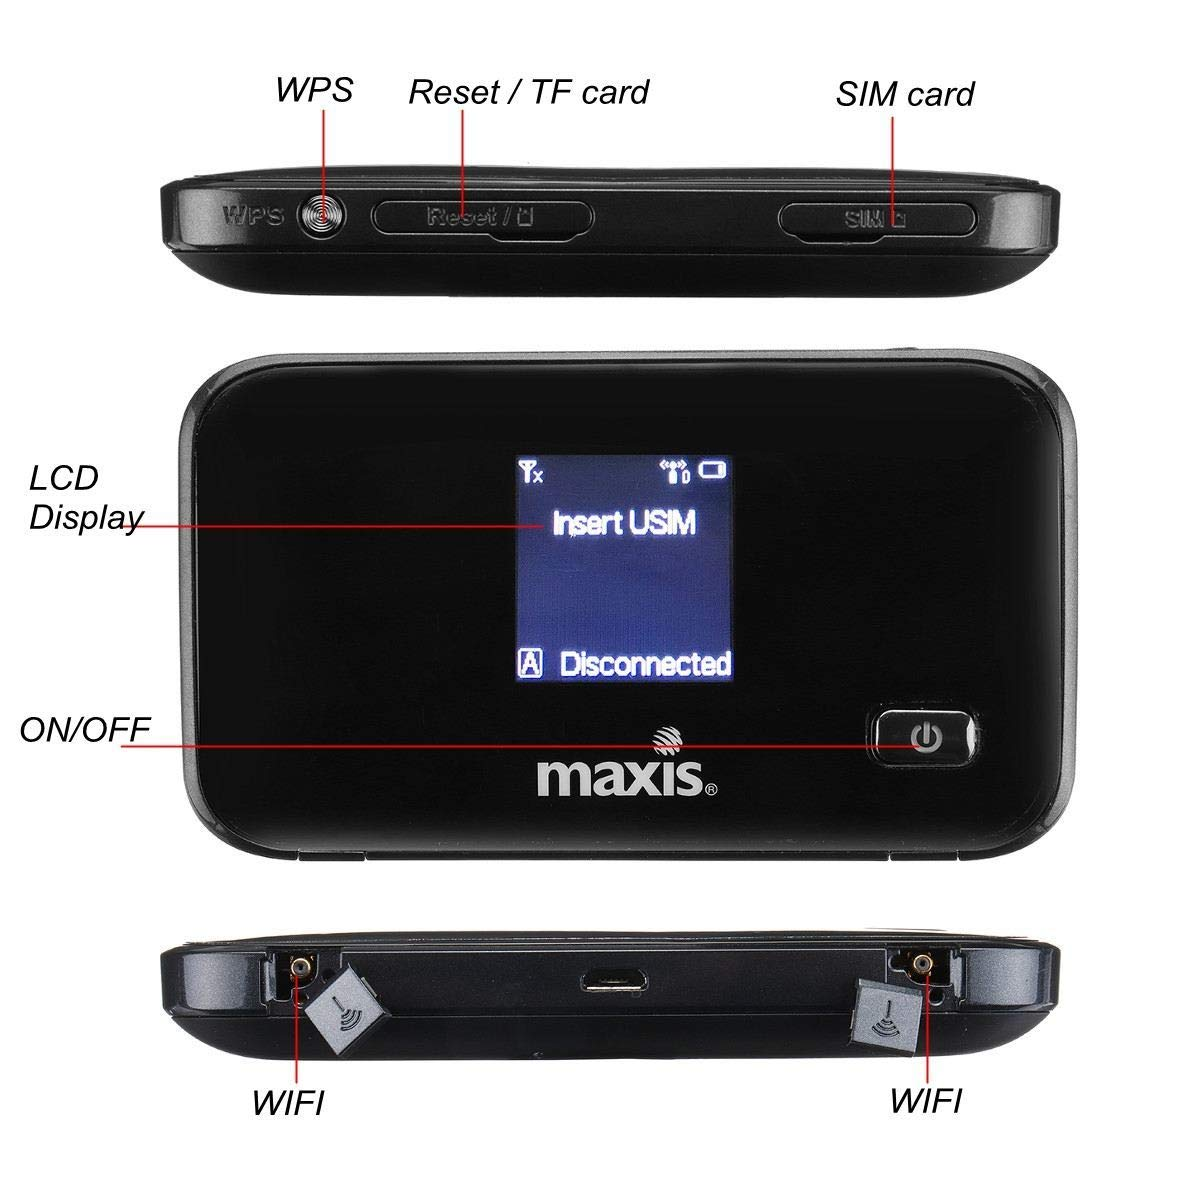 3G 4G LTE Routers Portable Wireless Mobile Hotspot Router SIM TF Card Slot for Cellphone by Beizuu (Image #3)